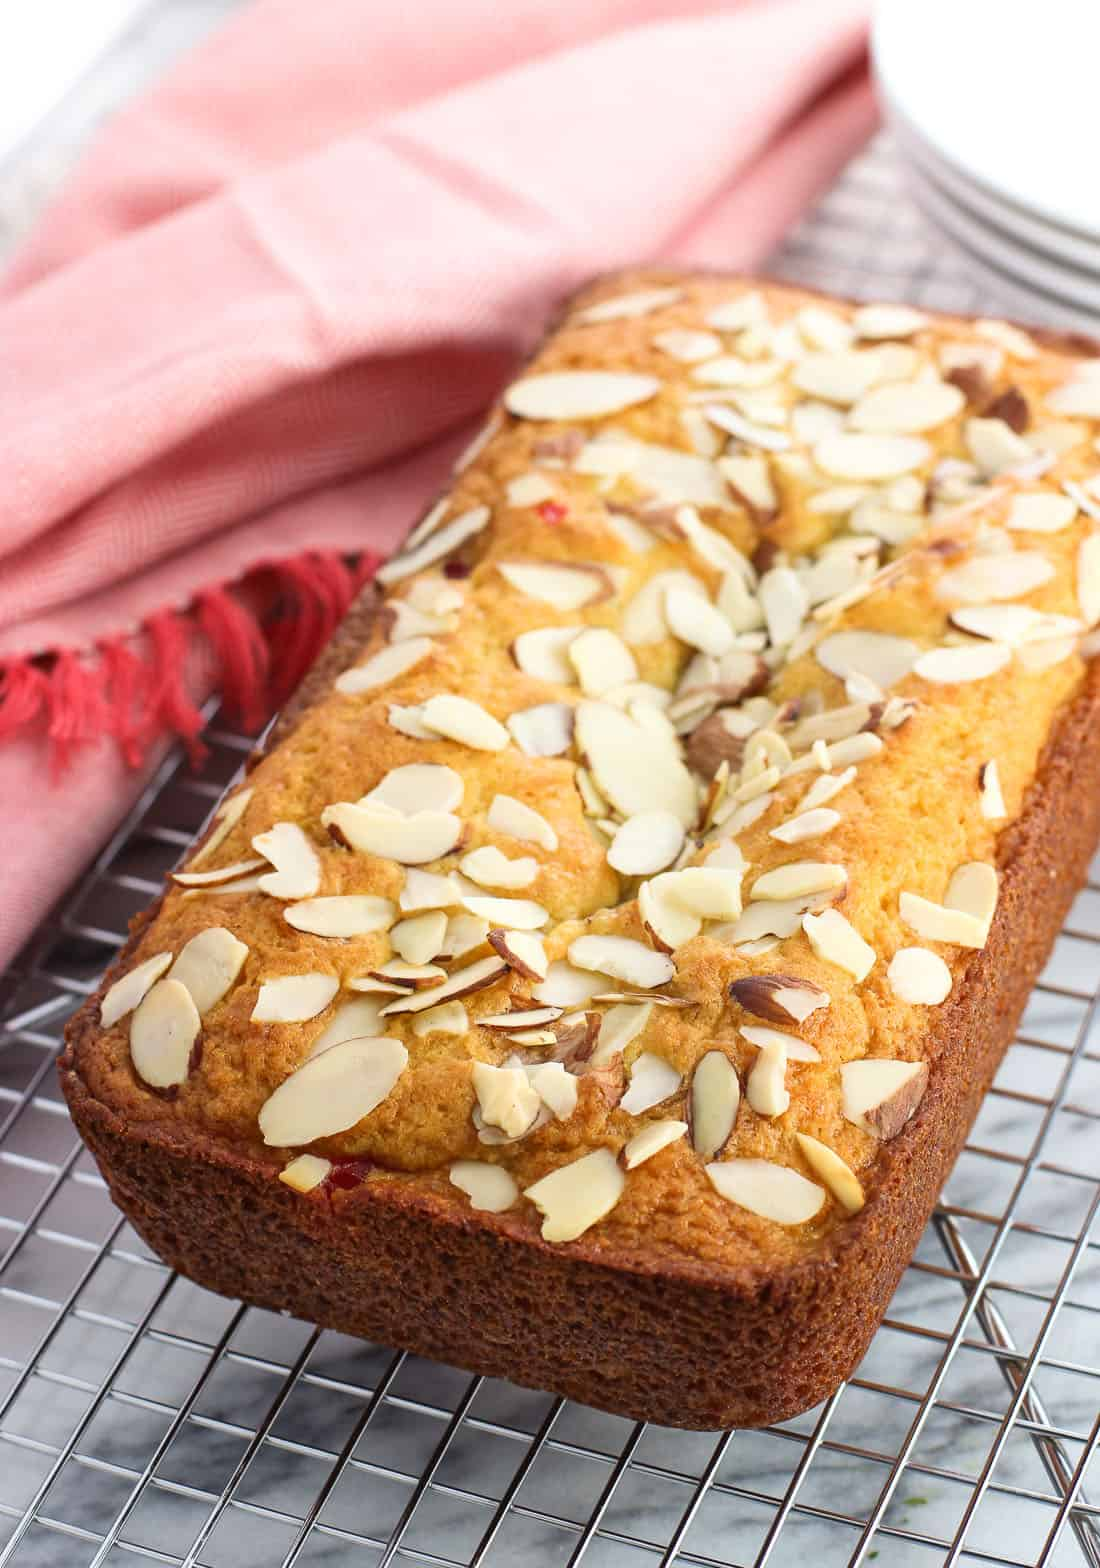 This cherry almond loaf cake is made with dry pudding mix for an ultra moist, vanilla and almond flavored loaf cake. Sliced maraschino cherries and slivered almonds round out this crowd-pleasing dessert.